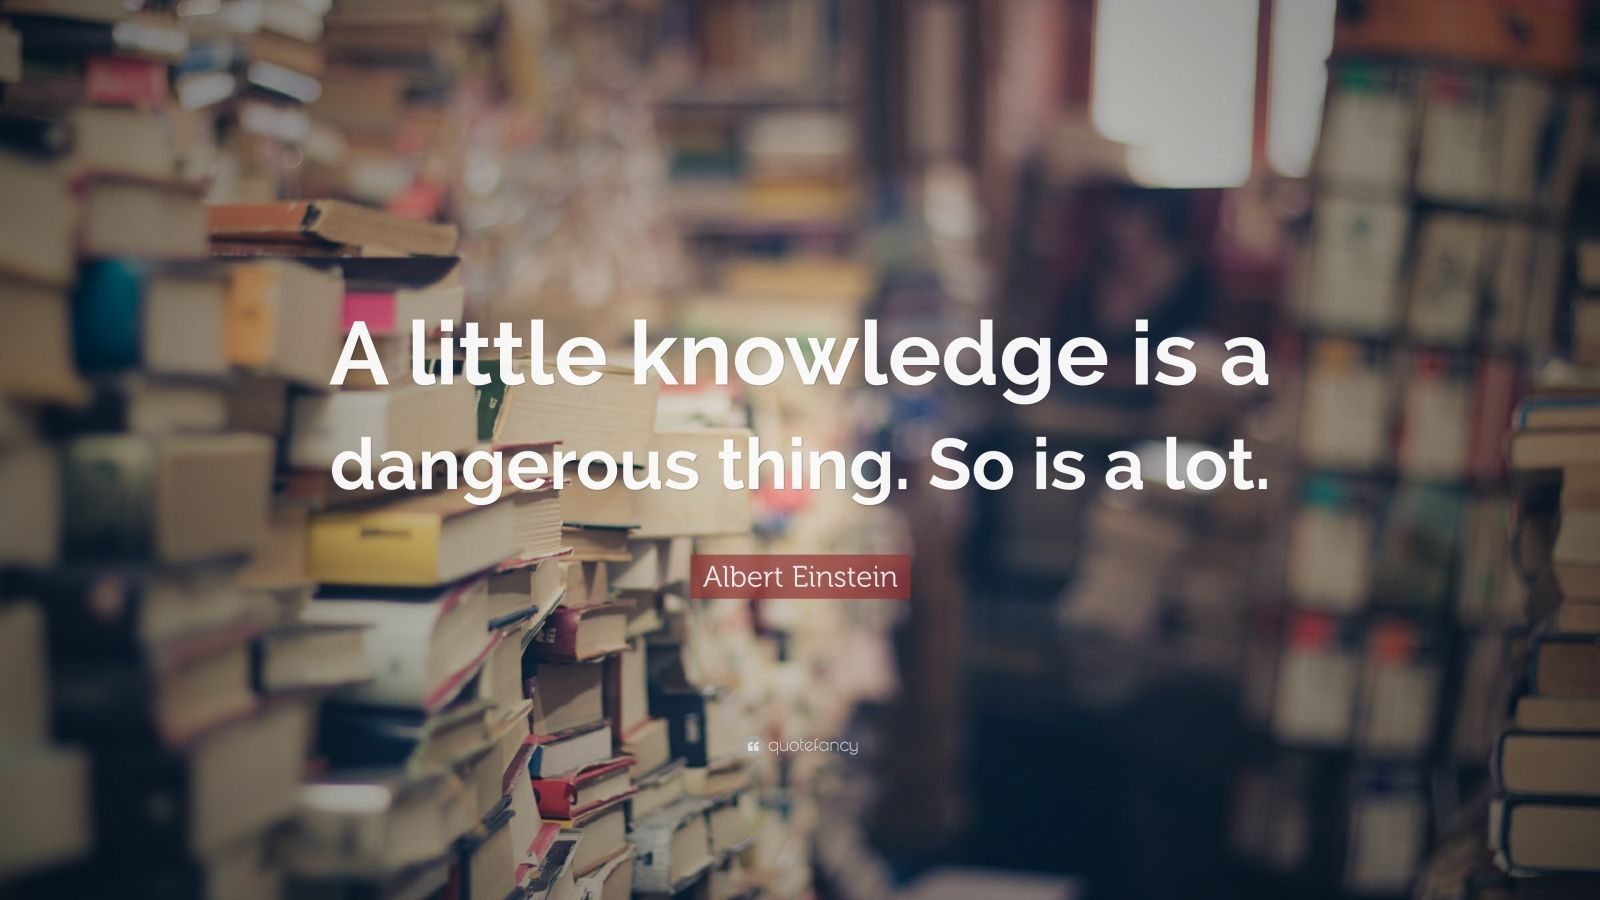 A little knowledge is a dangerous thing essay